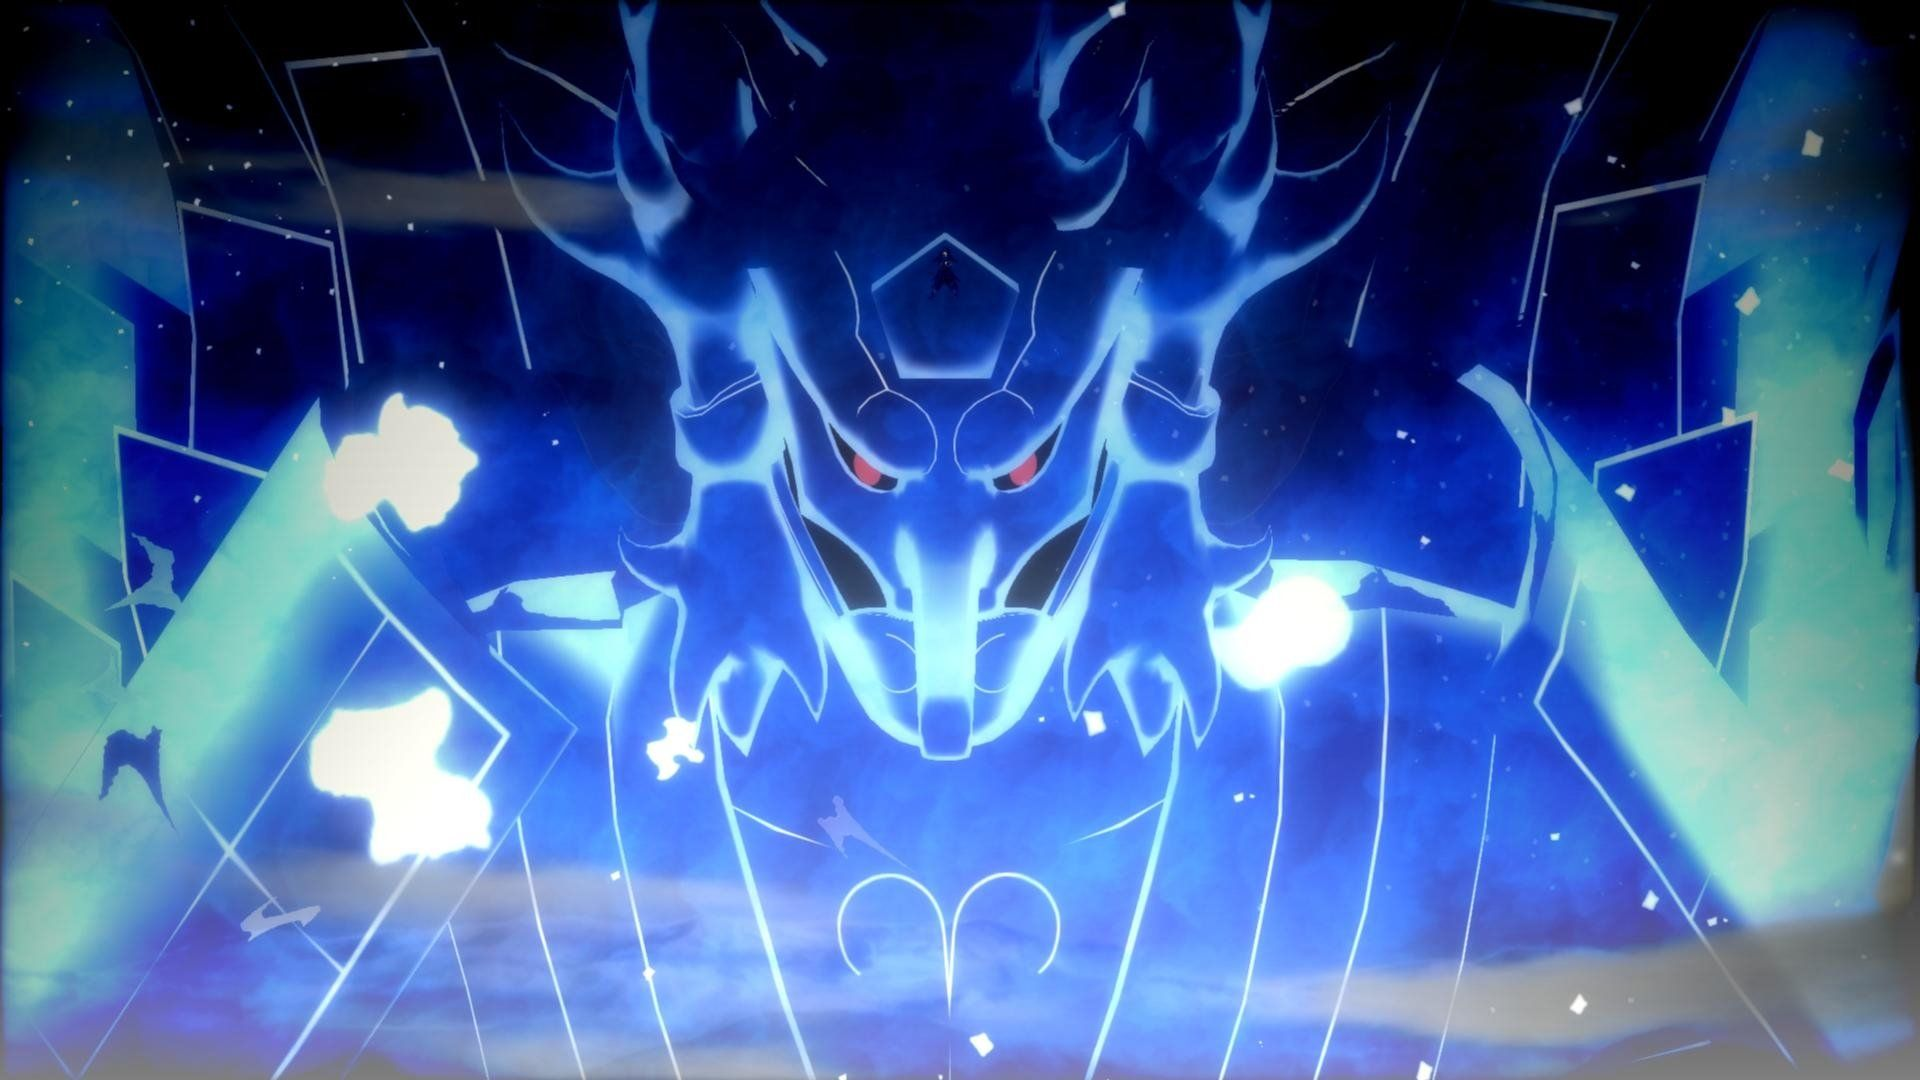 19 Susanoo Naruto Hd Wallpapers Backgrounds Wallpaper